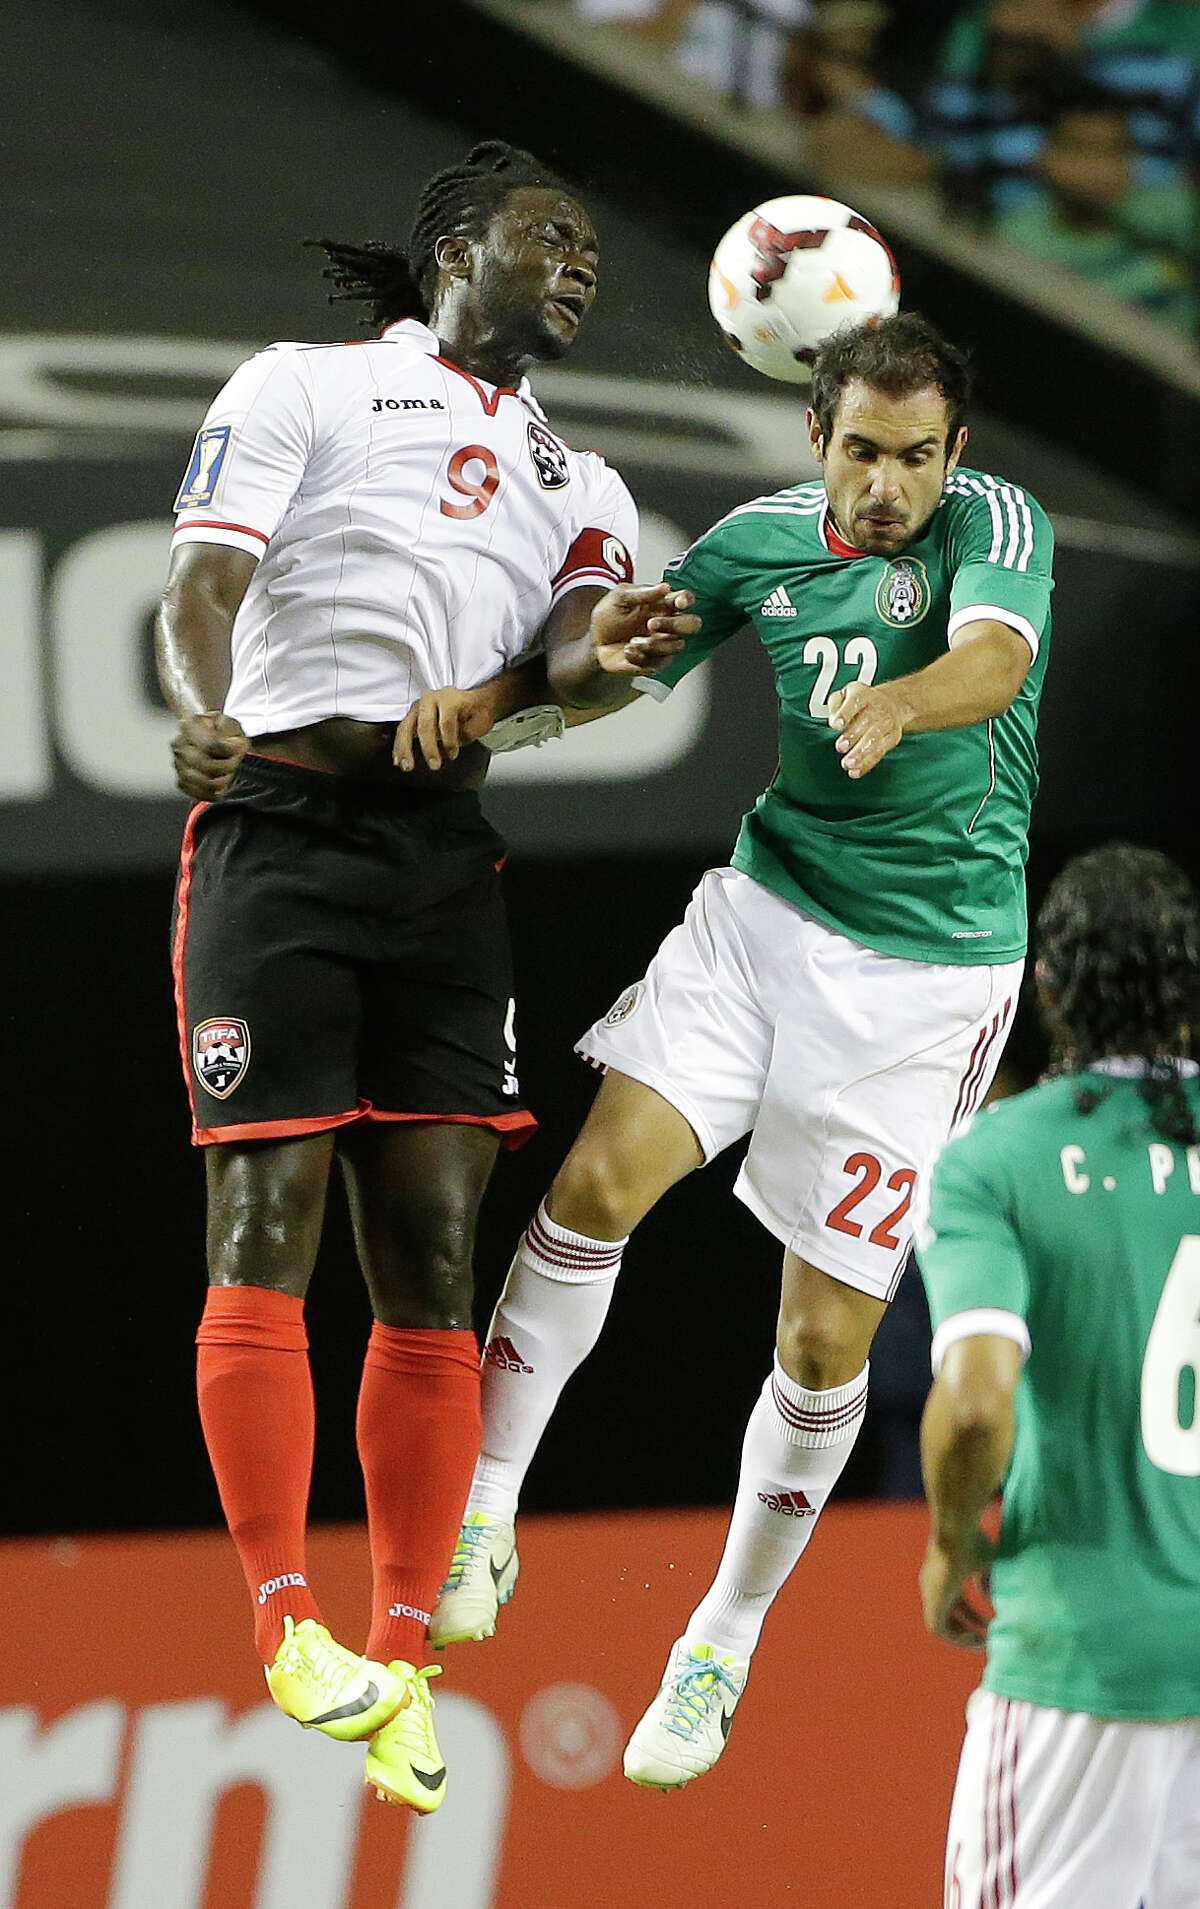 Trinidad & Tobago's Kenwyne Jones (9) and Mexico's Alejandro Castro fight for the ball during the second half in the quarterfinals of the CONCACAF Gold Cup soccer tournament, Saturday, July 20, 2013, in Atlanta. Mexico won 1-0. (AP Photo/John Bazemore)